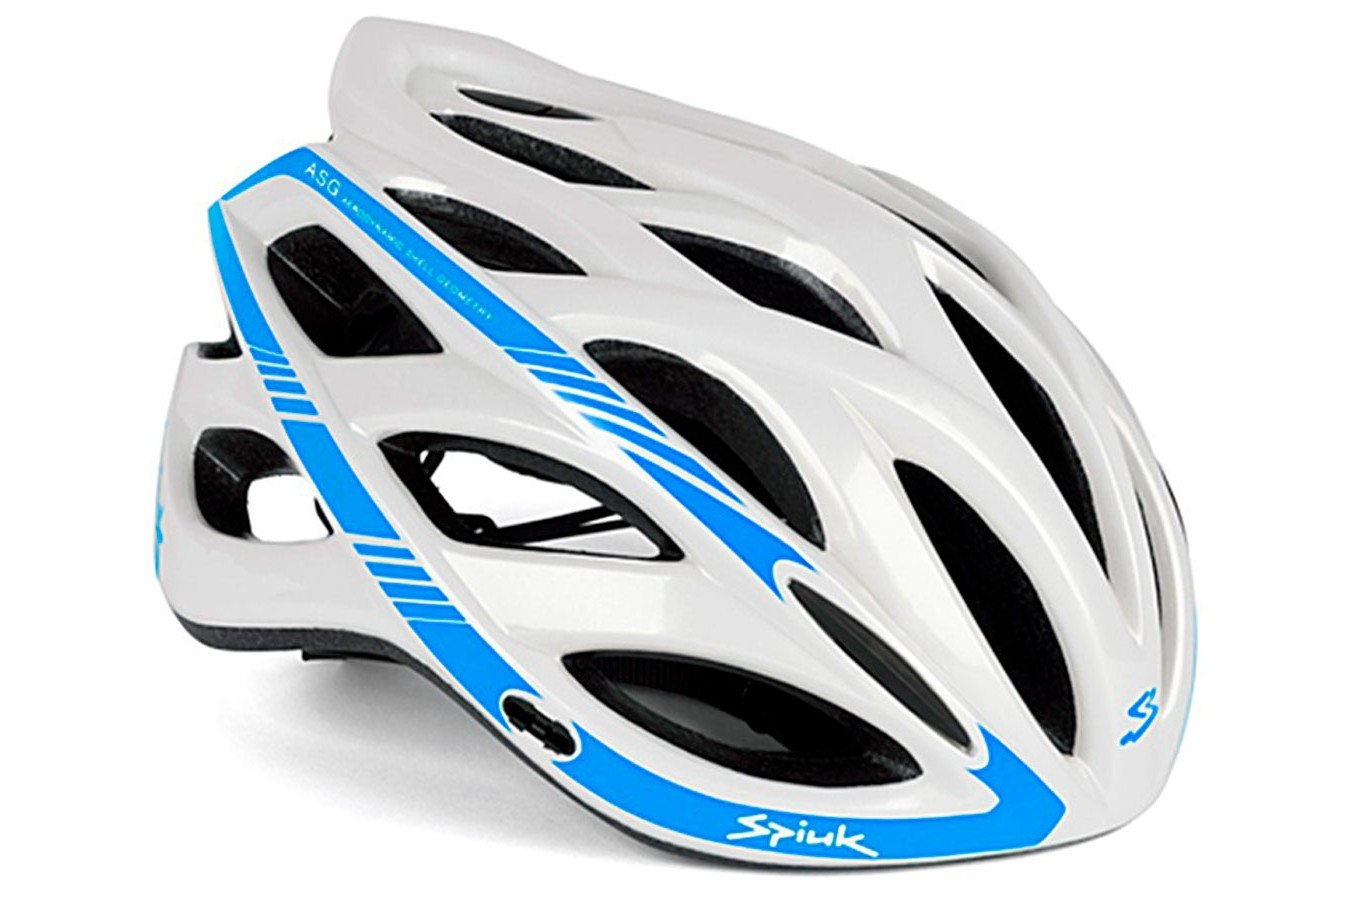 Capacete Ciclista Keilan - Spiuk